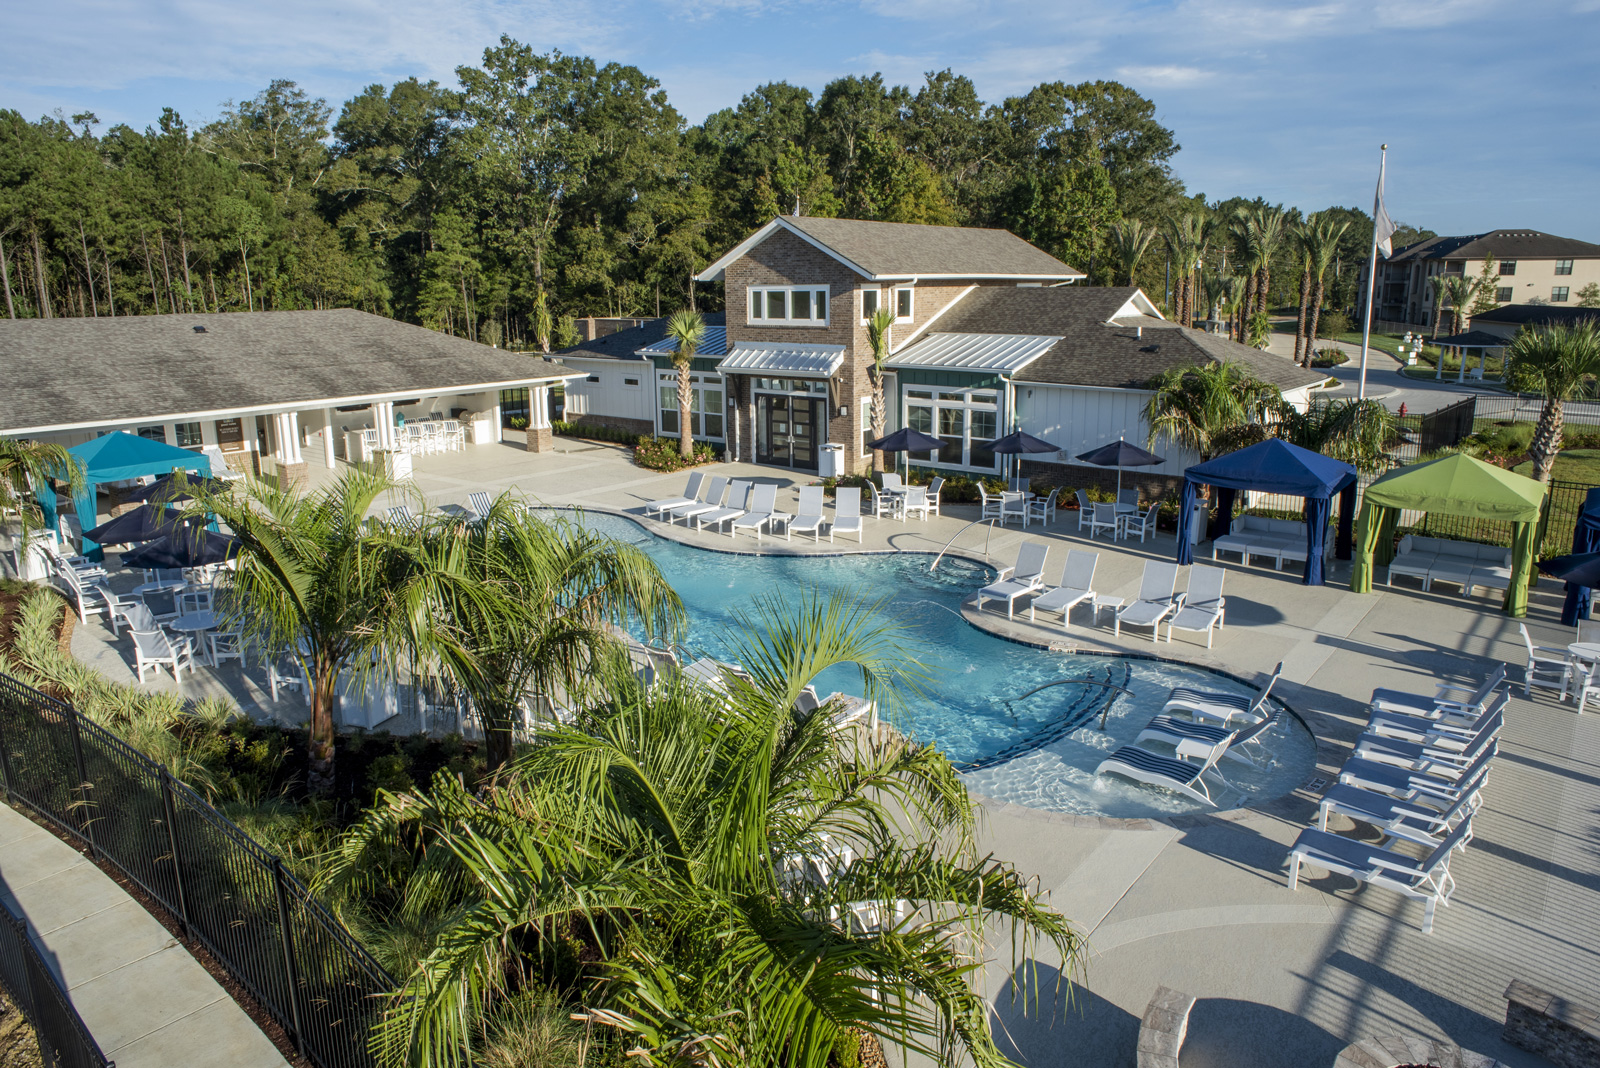 Cabana-Style Pool and Sun Deck at The Palms at Juban Lakes Apartments in Denham Springs, Louisiana